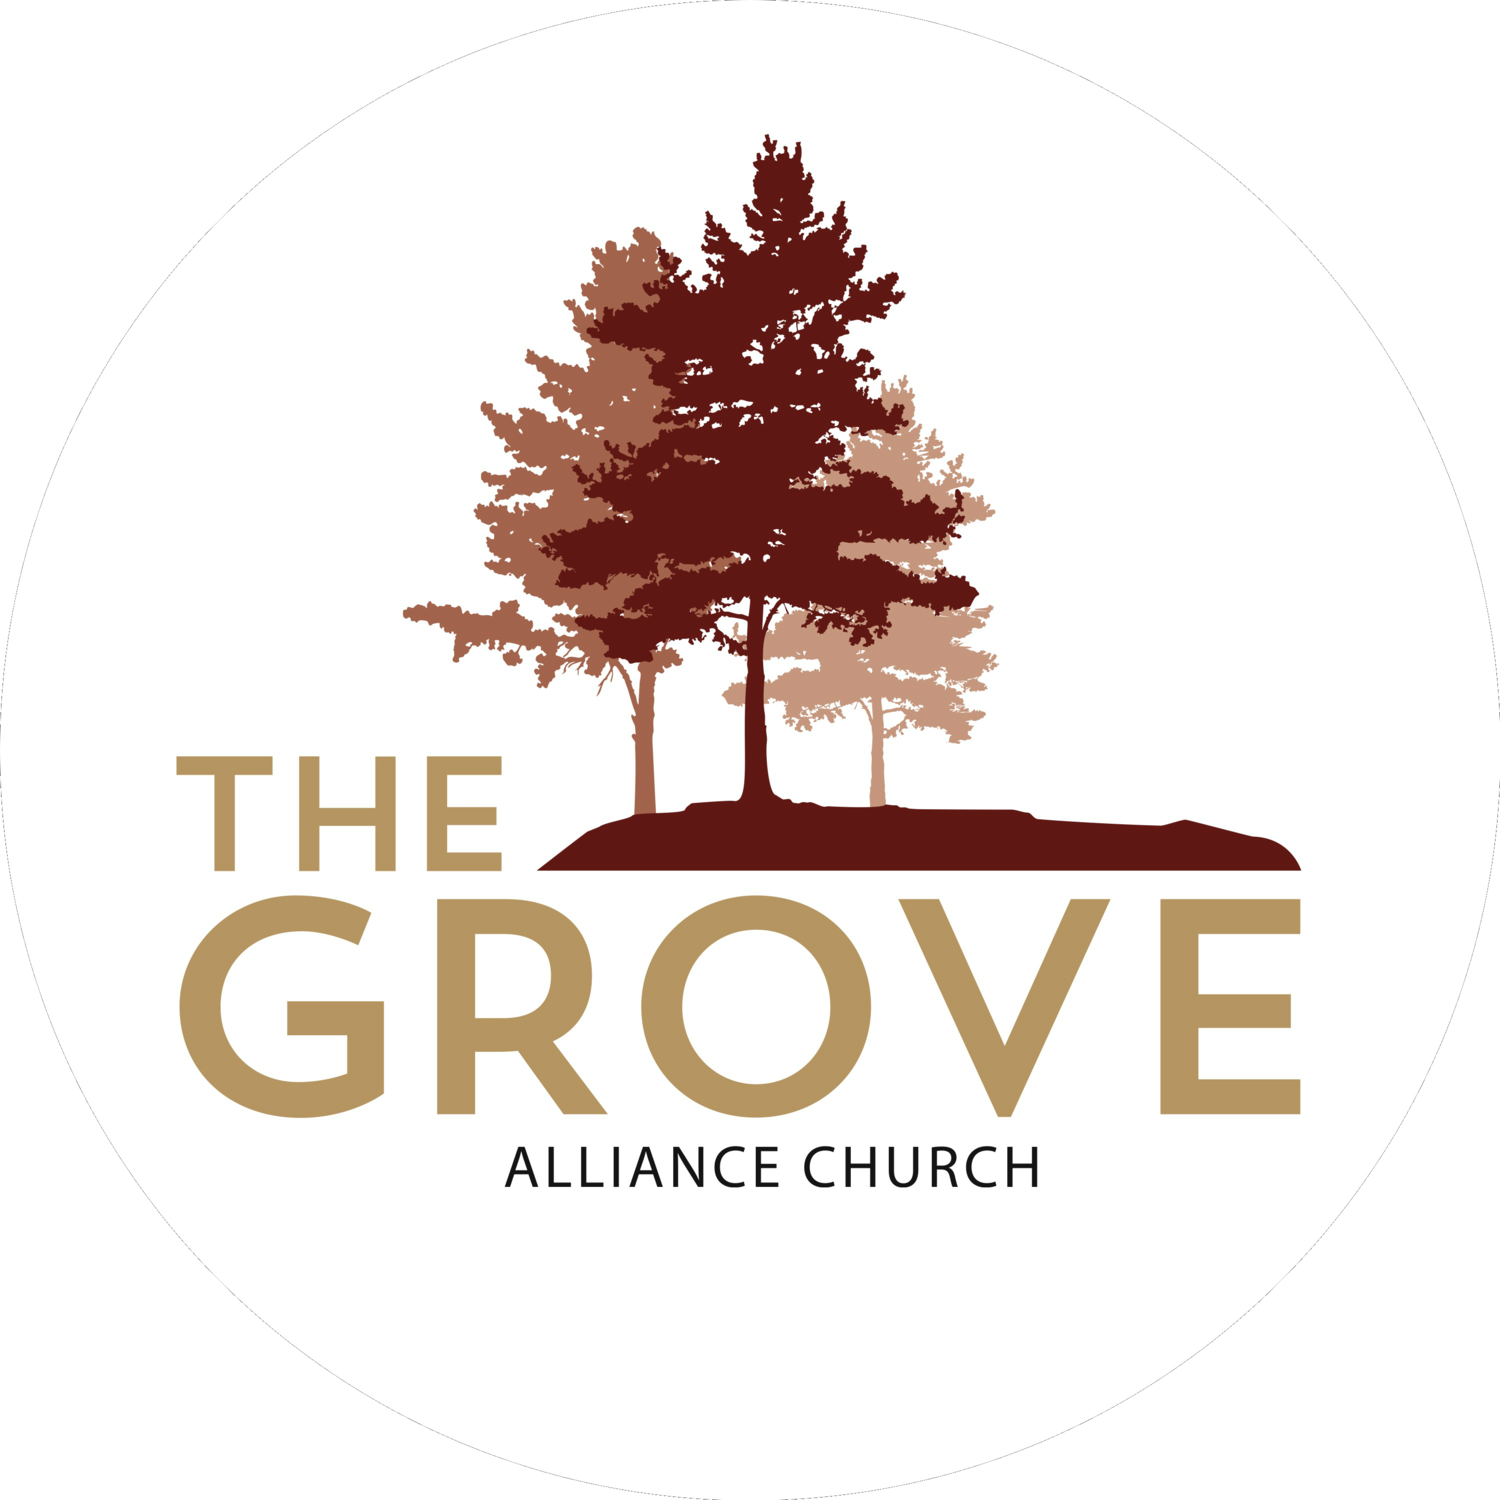 The Grove Alliance Church